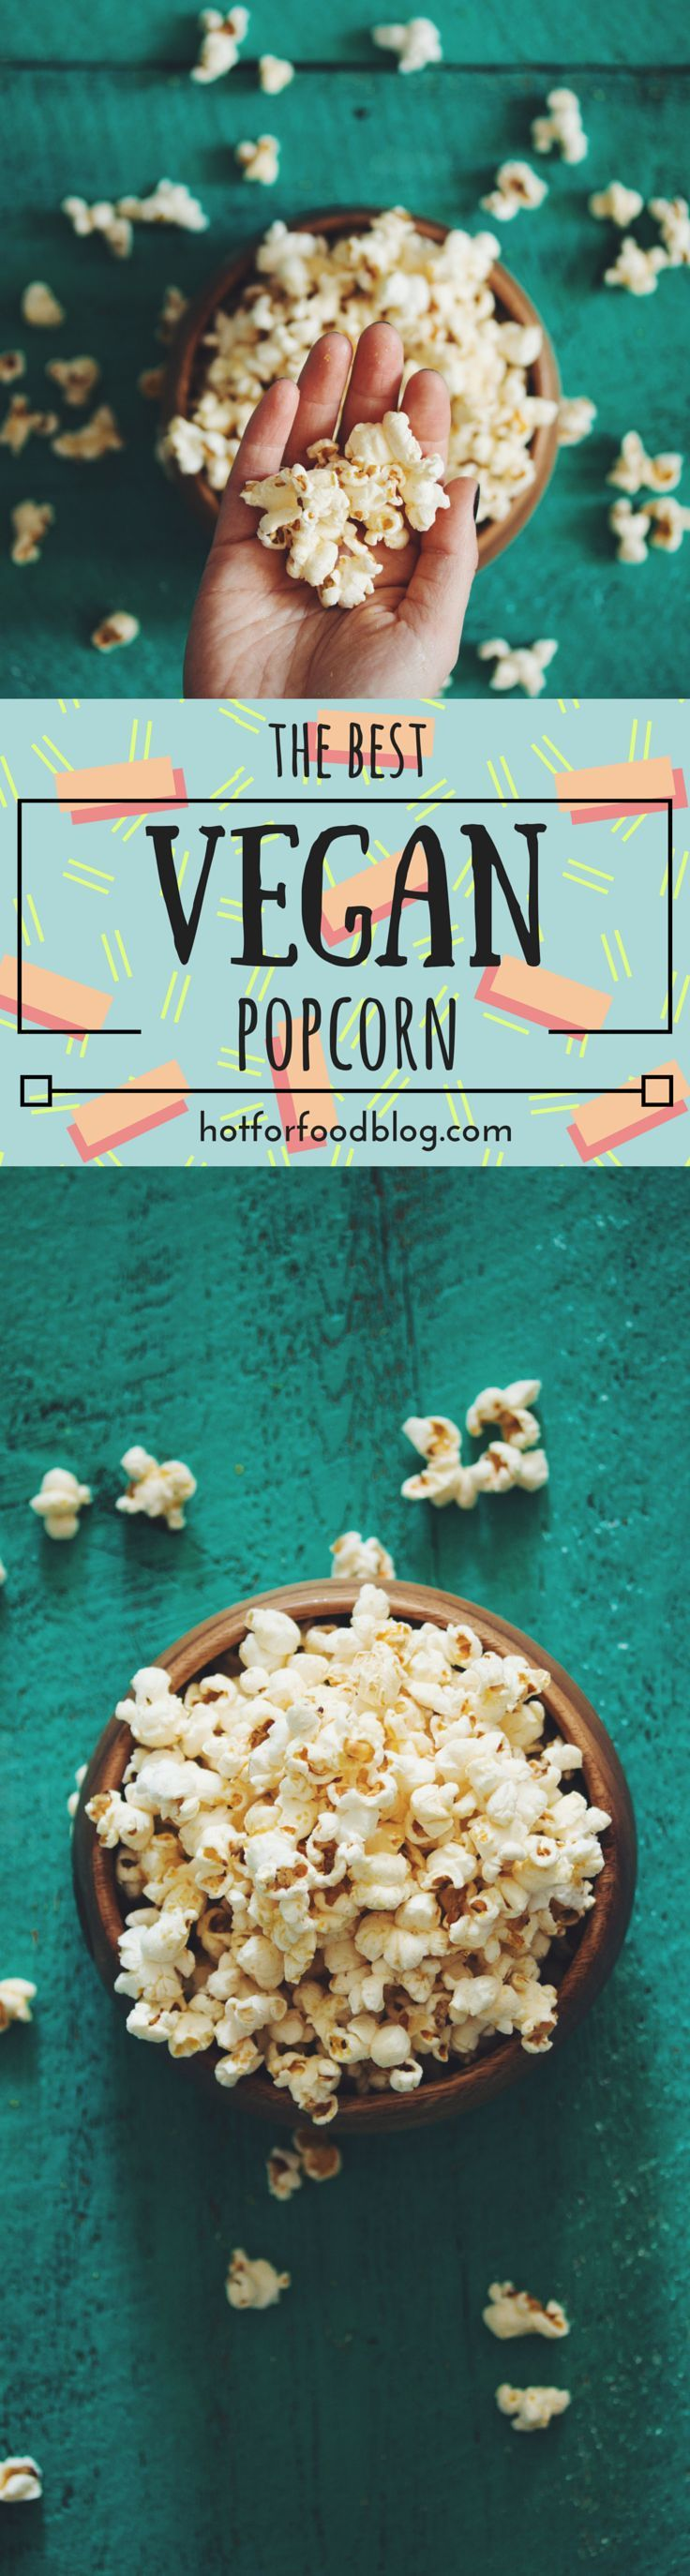 the best vegan popcorn | RECIPE on http://hotforfoodblog.com